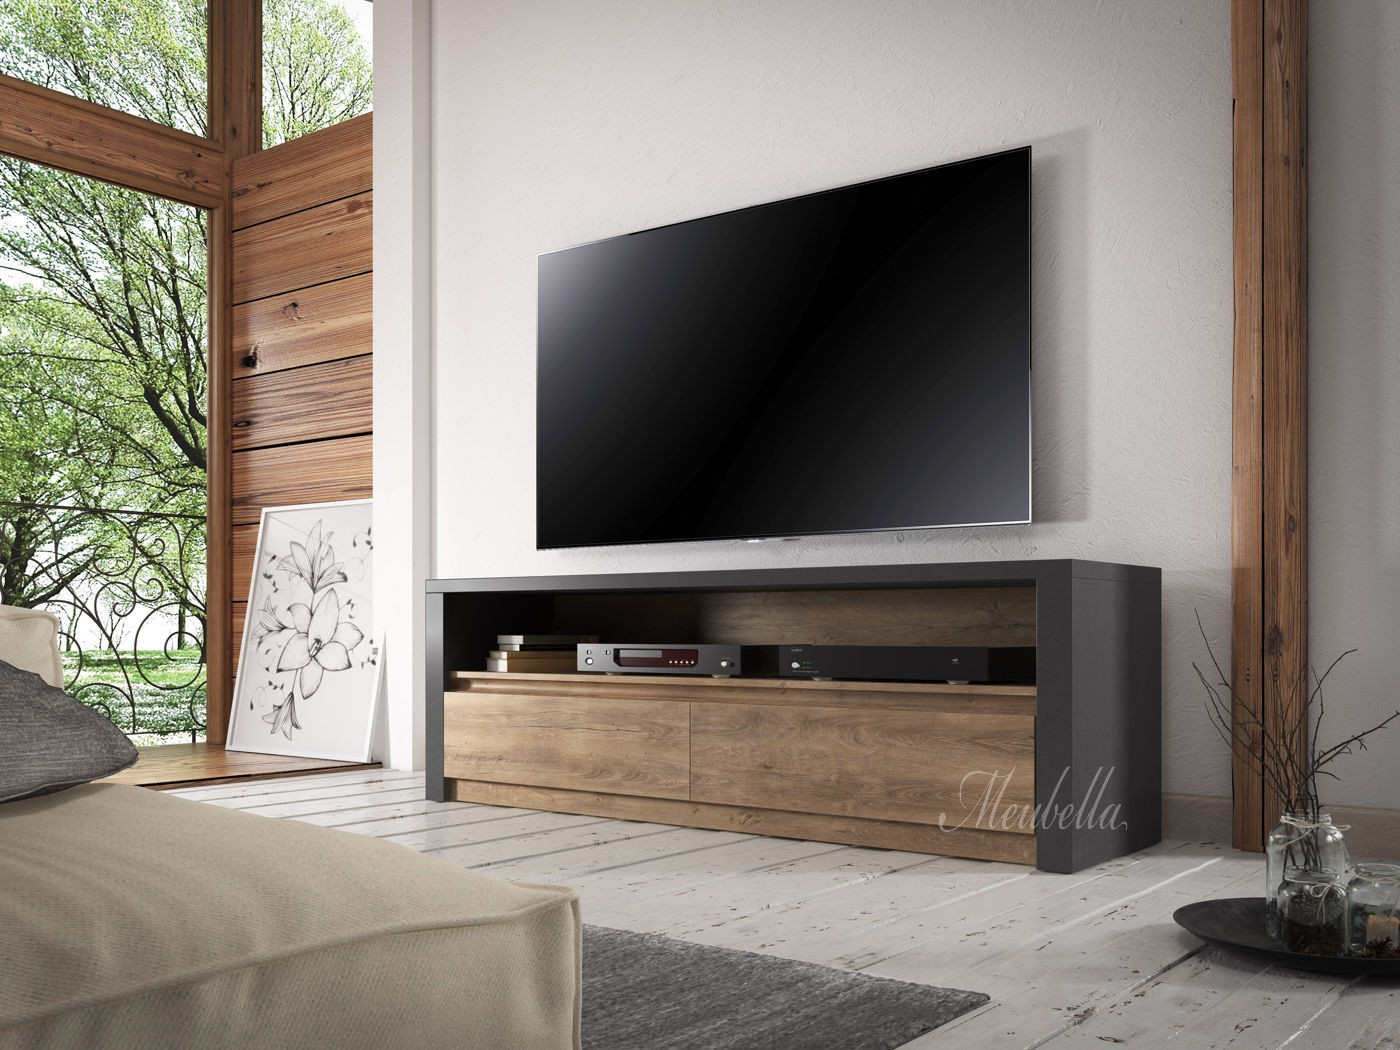 tv meubel monaco eiken grijs 130 cm meubella. Black Bedroom Furniture Sets. Home Design Ideas